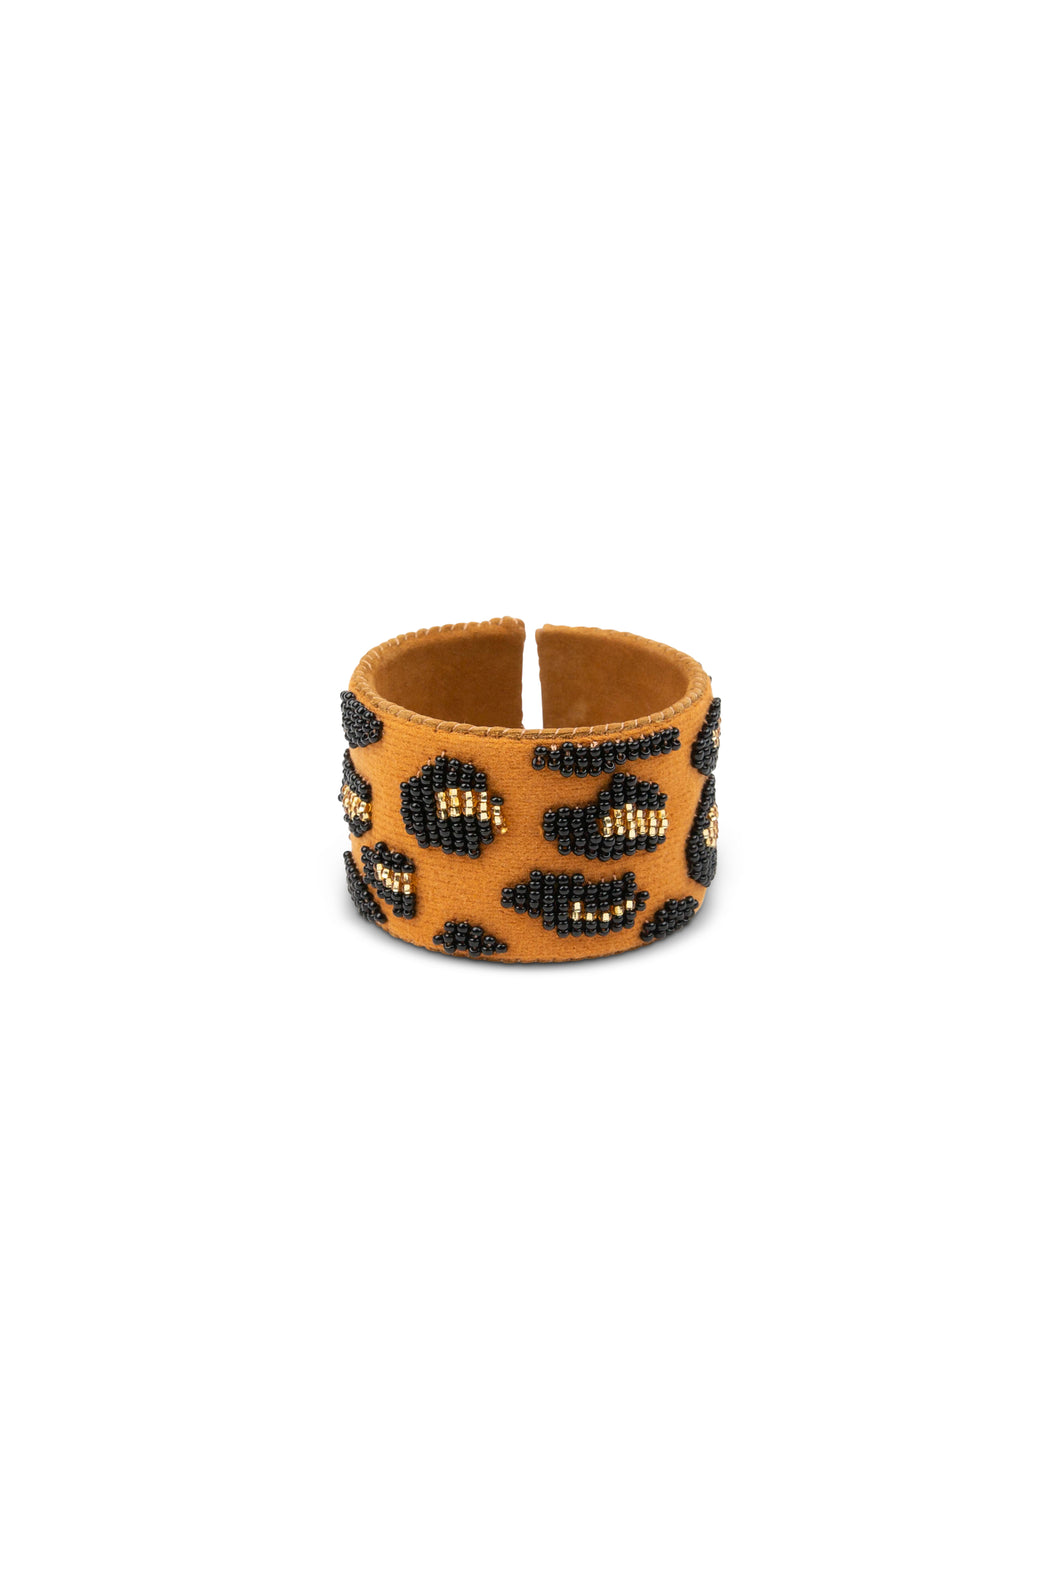 Noonday Collection: Wild and Free Cuff